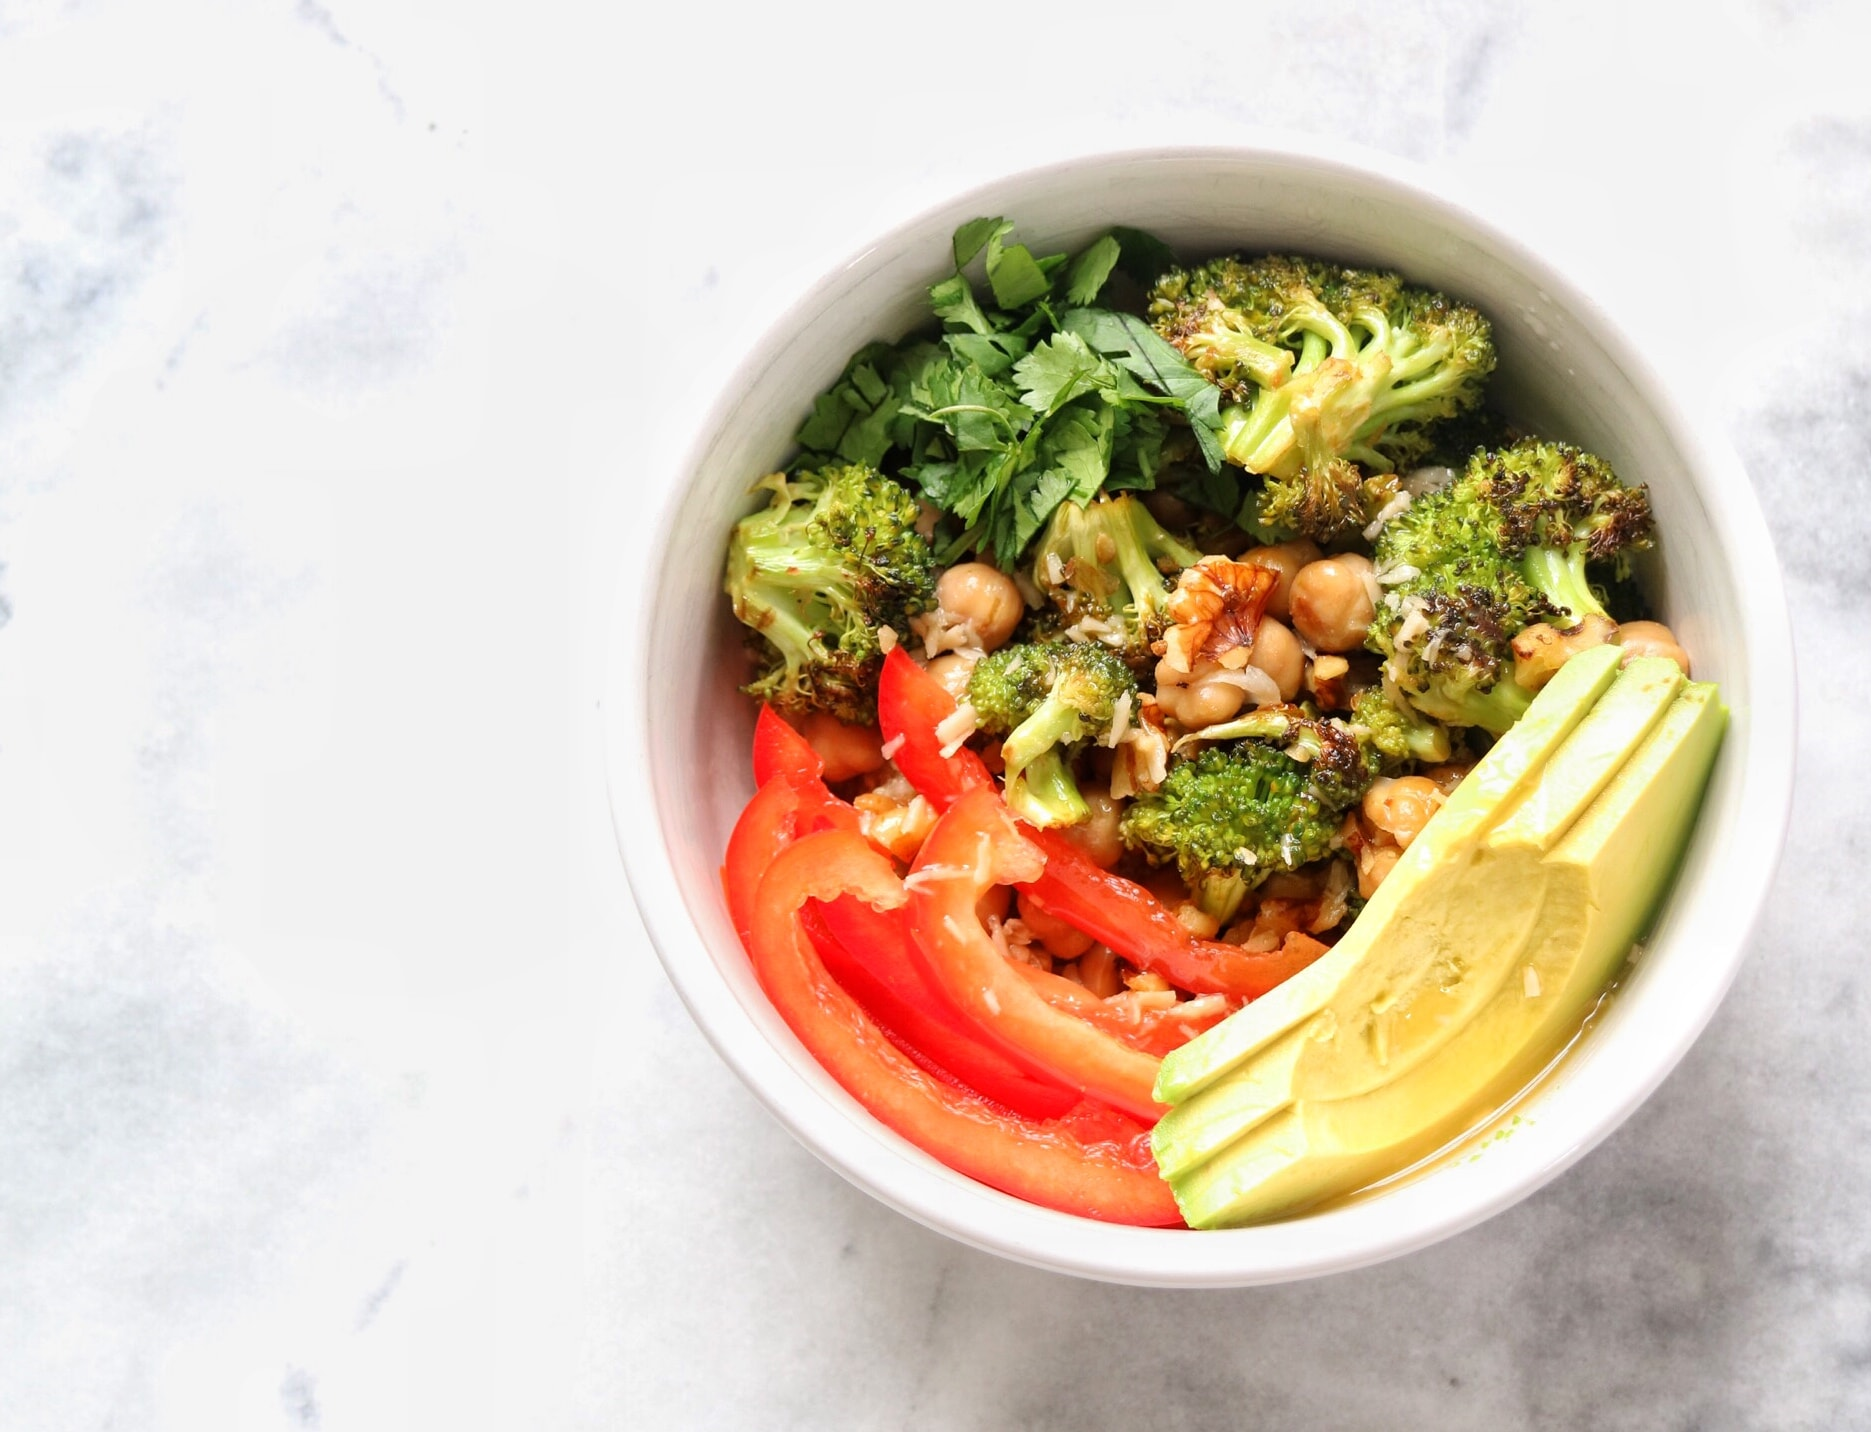 Tropical Chickpea Walnut Quinoa Bowl | The Nutrition Adventure